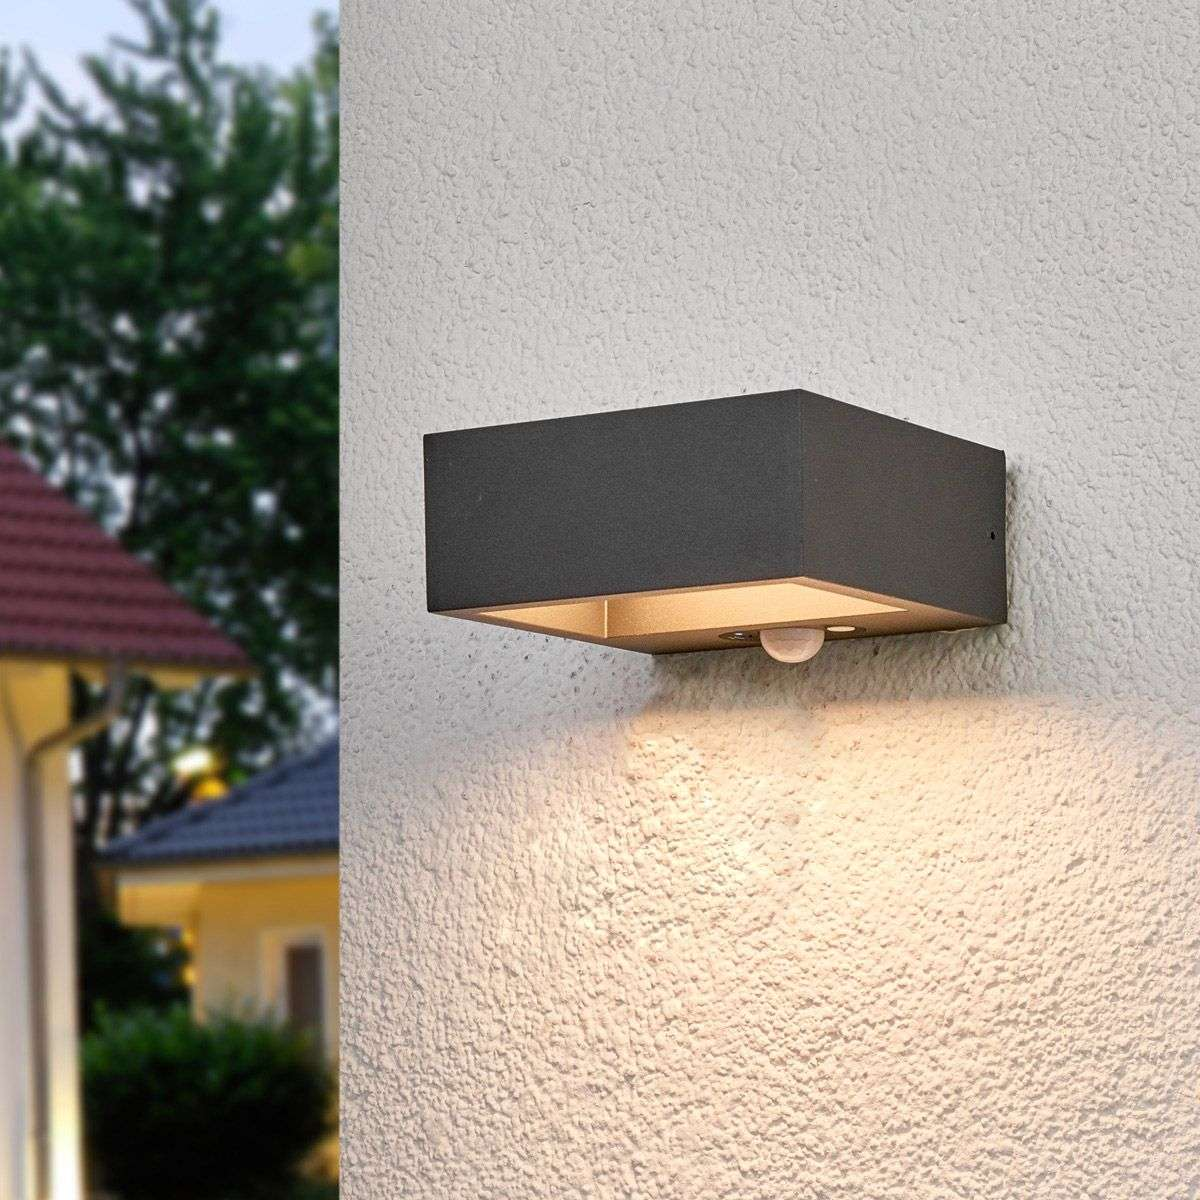 Solar powered led outdoor wall light mahra sensor lights solar powered led outdoor wall light mahra sensor 9619074 31 aloadofball